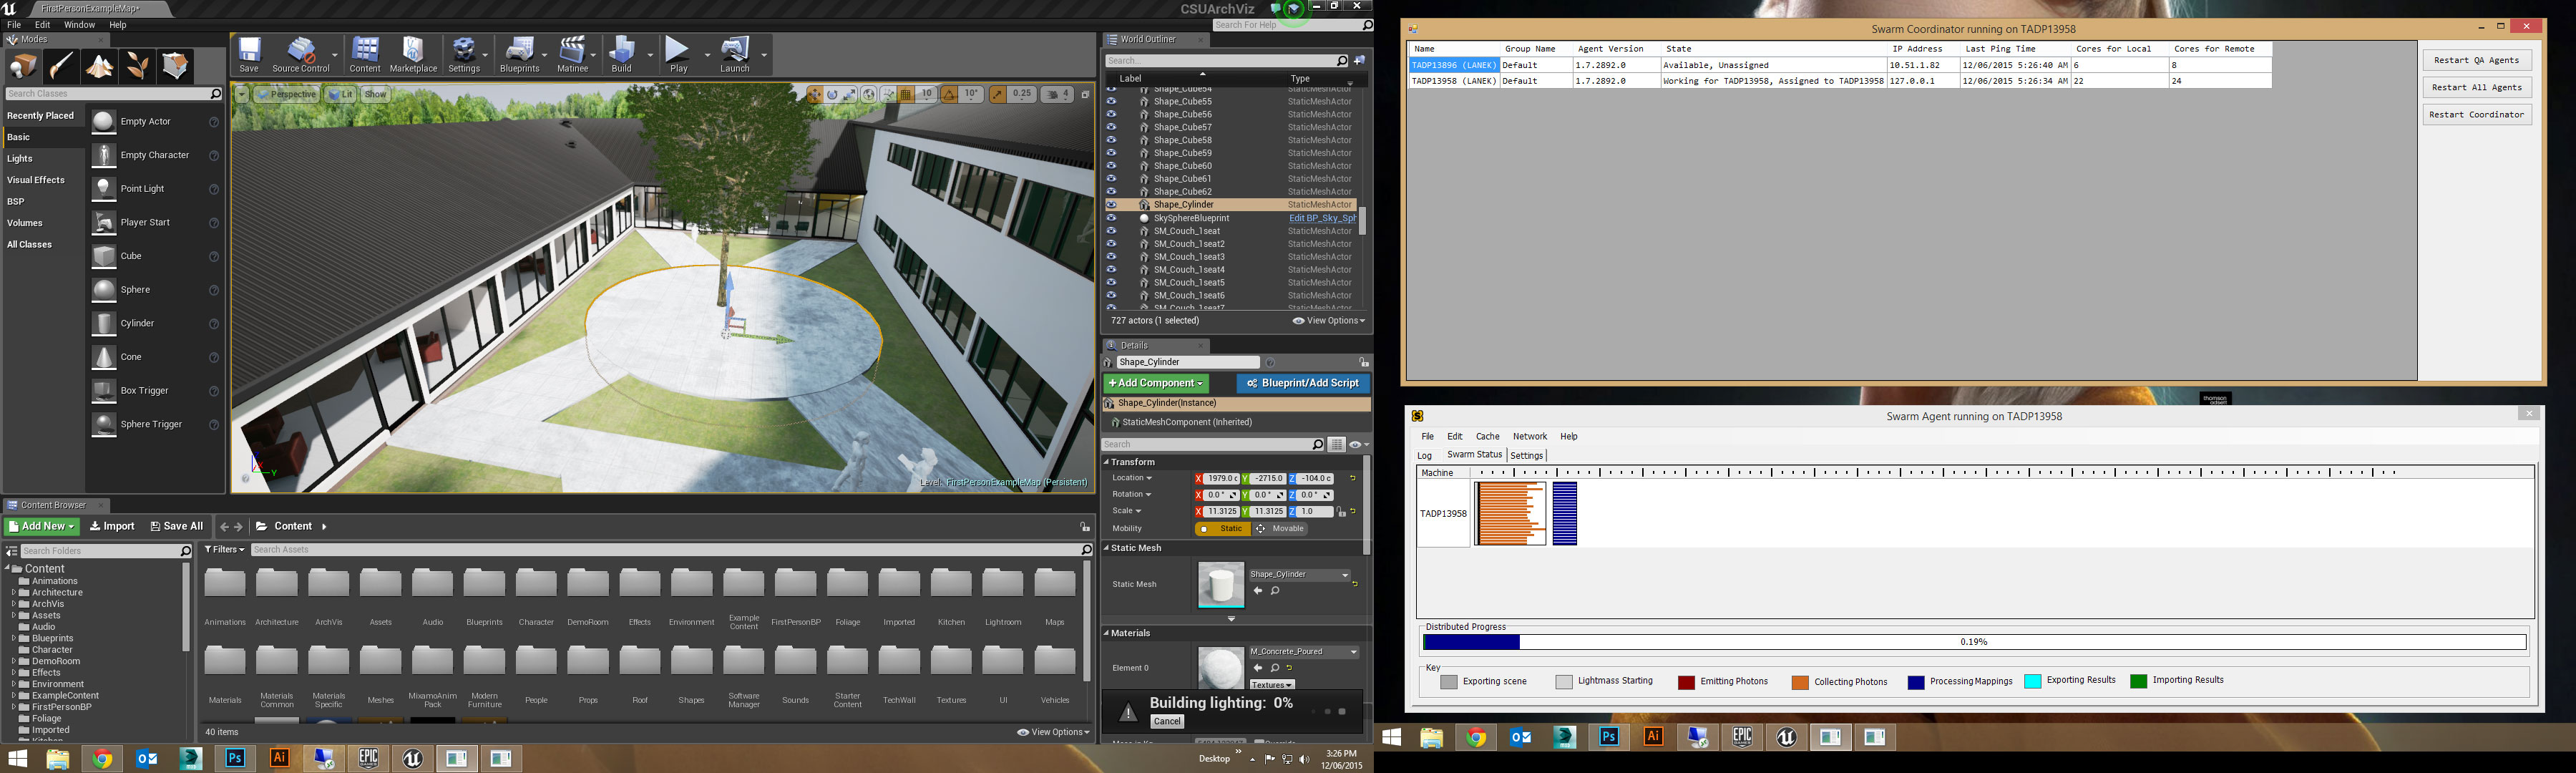 RENDERIZAR EN UNREAL ENGINE 4